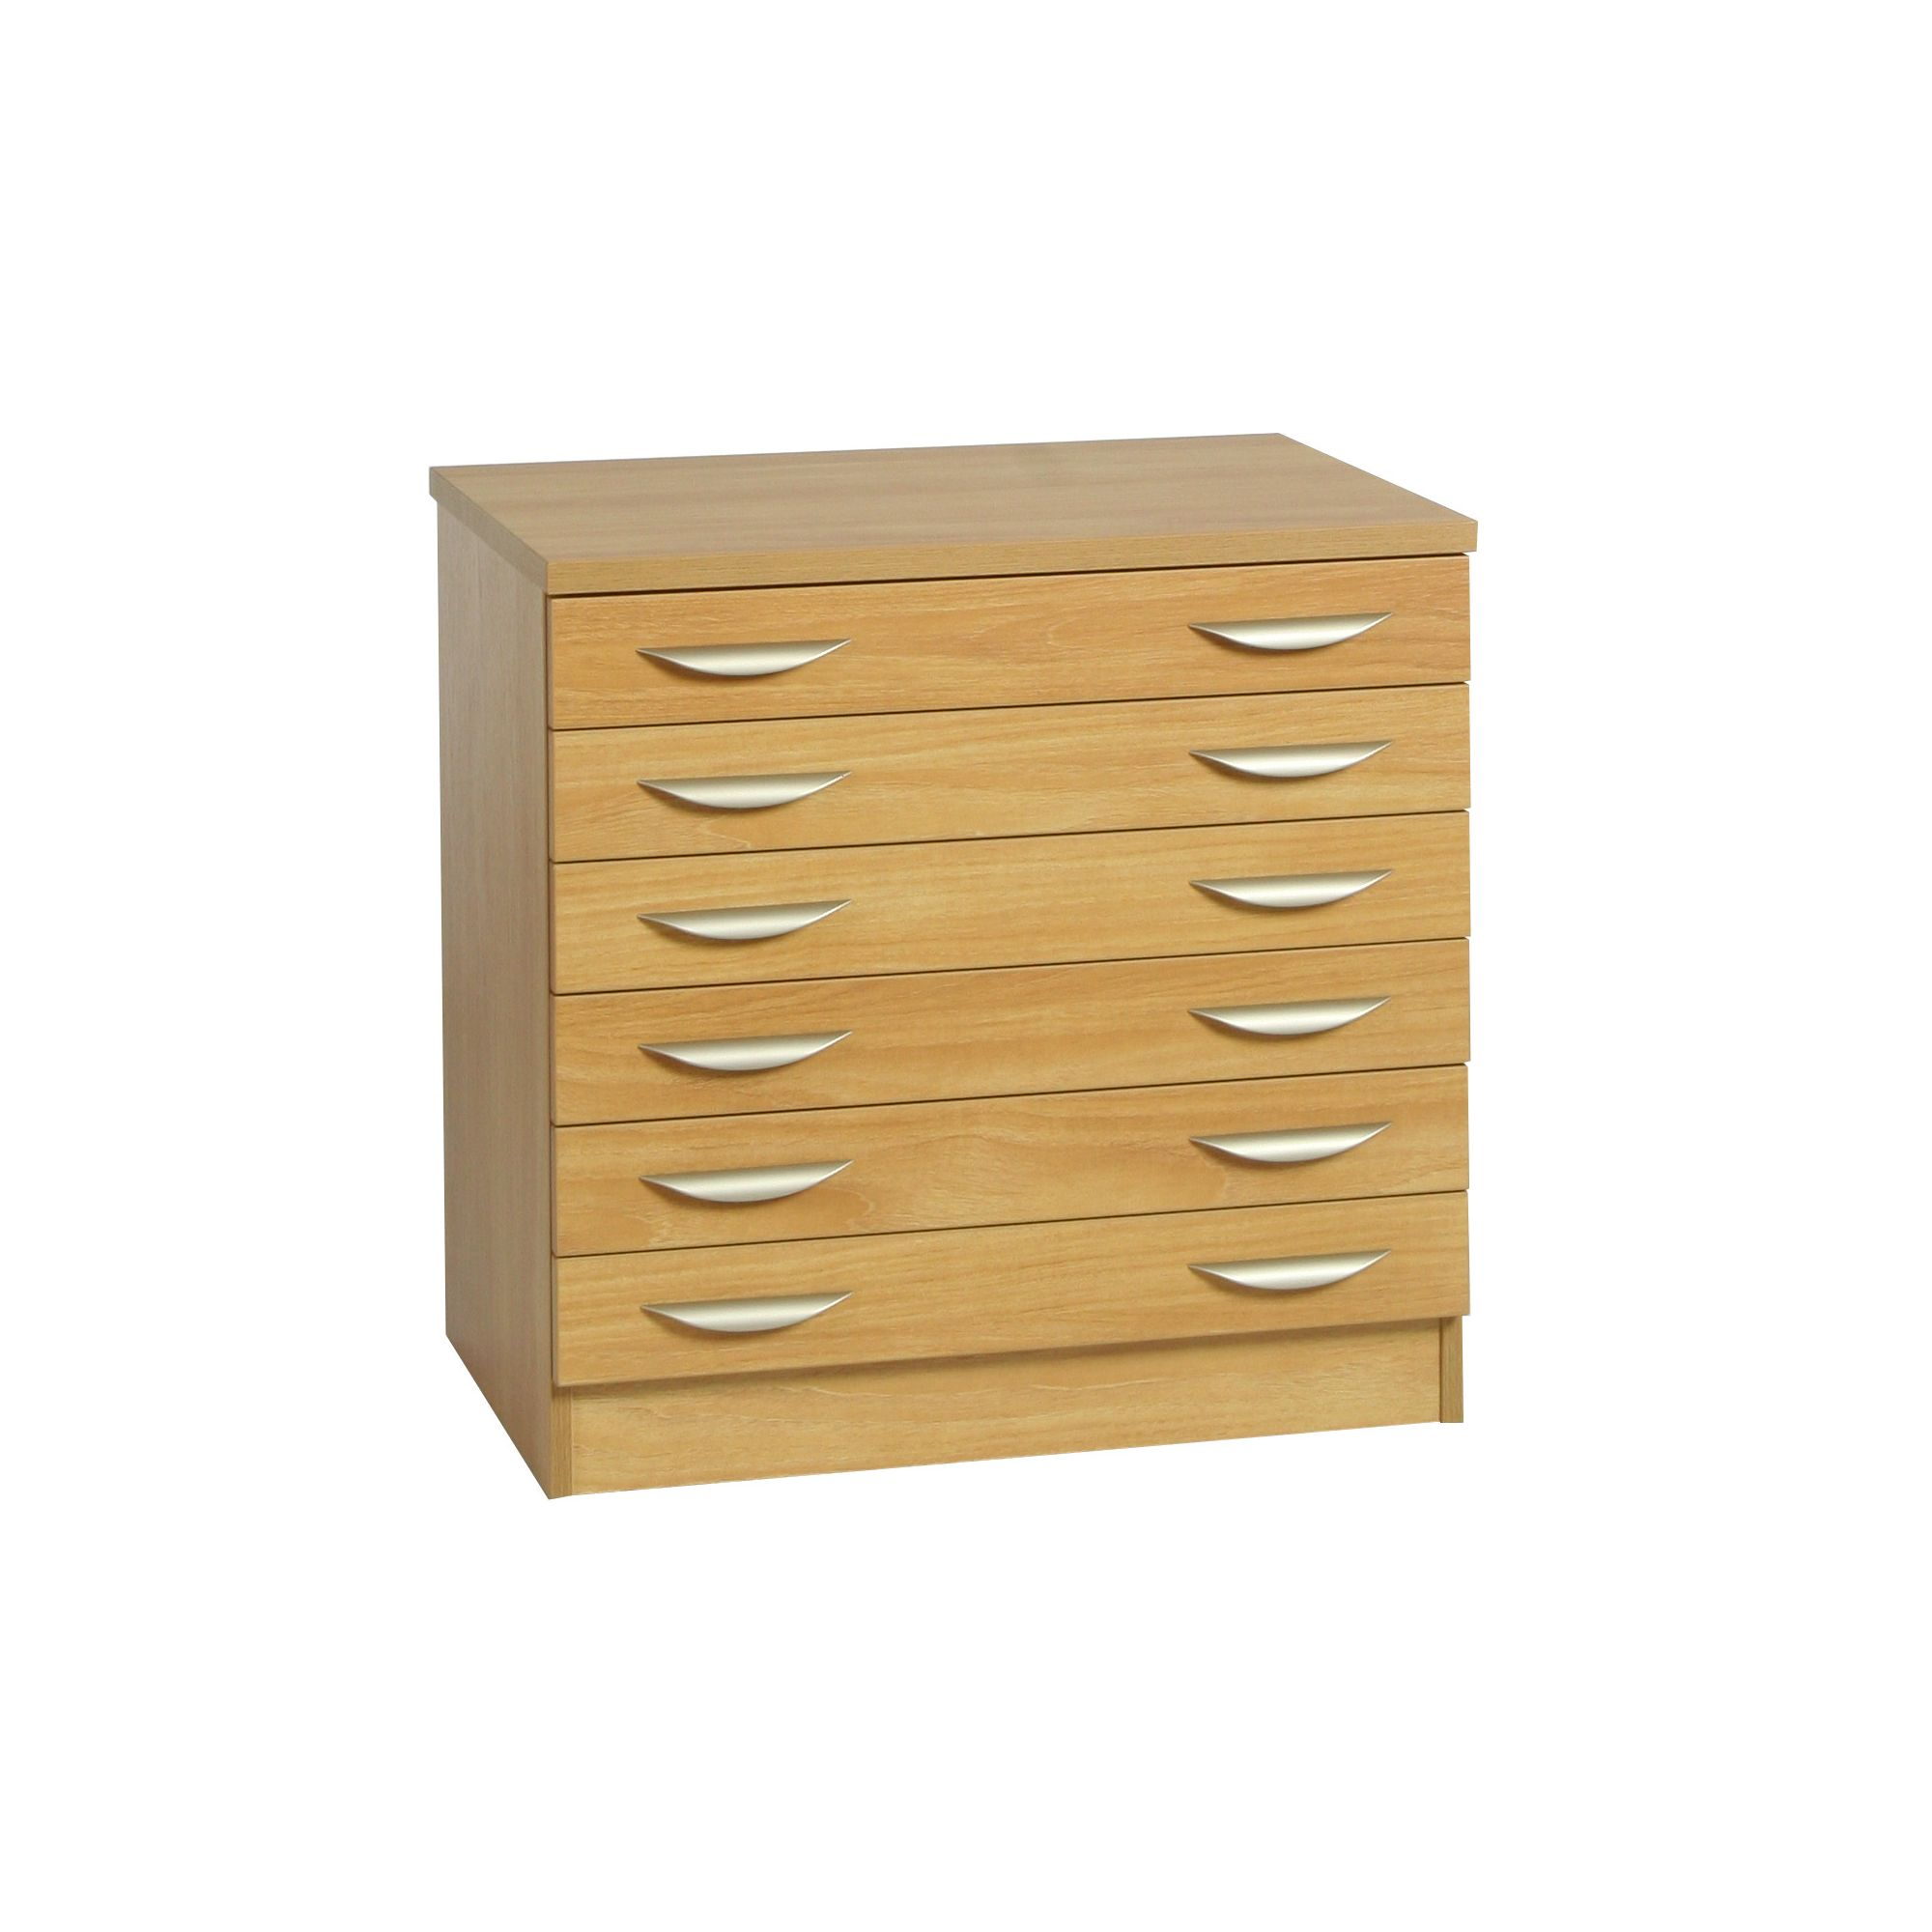 R White Cabinets Six Drawer Wooden Unit - Beech